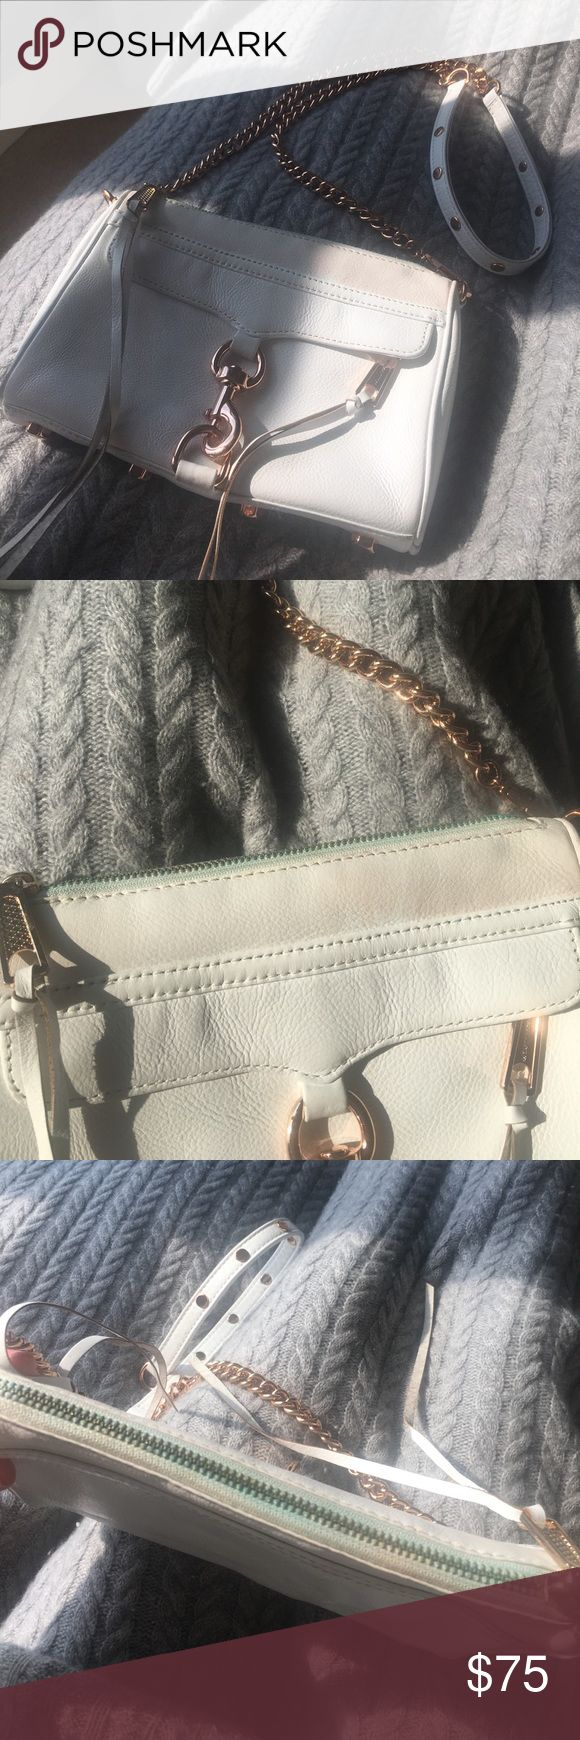 Rebecca Minkoff limited edition mini mac White This is my favorite bag, I unfortunately had nail polish on the inside fabric and was able to get it out however it soaked into the zipper and too part of the leather by the zipper, the zipper is green but cannot be seen from the front or back. The leather near the top is an odd white the rest of the bag is very nice white. Still in great condition otherwise! Strap has no insides or stains it's in  very good condition. they don't make this bag…